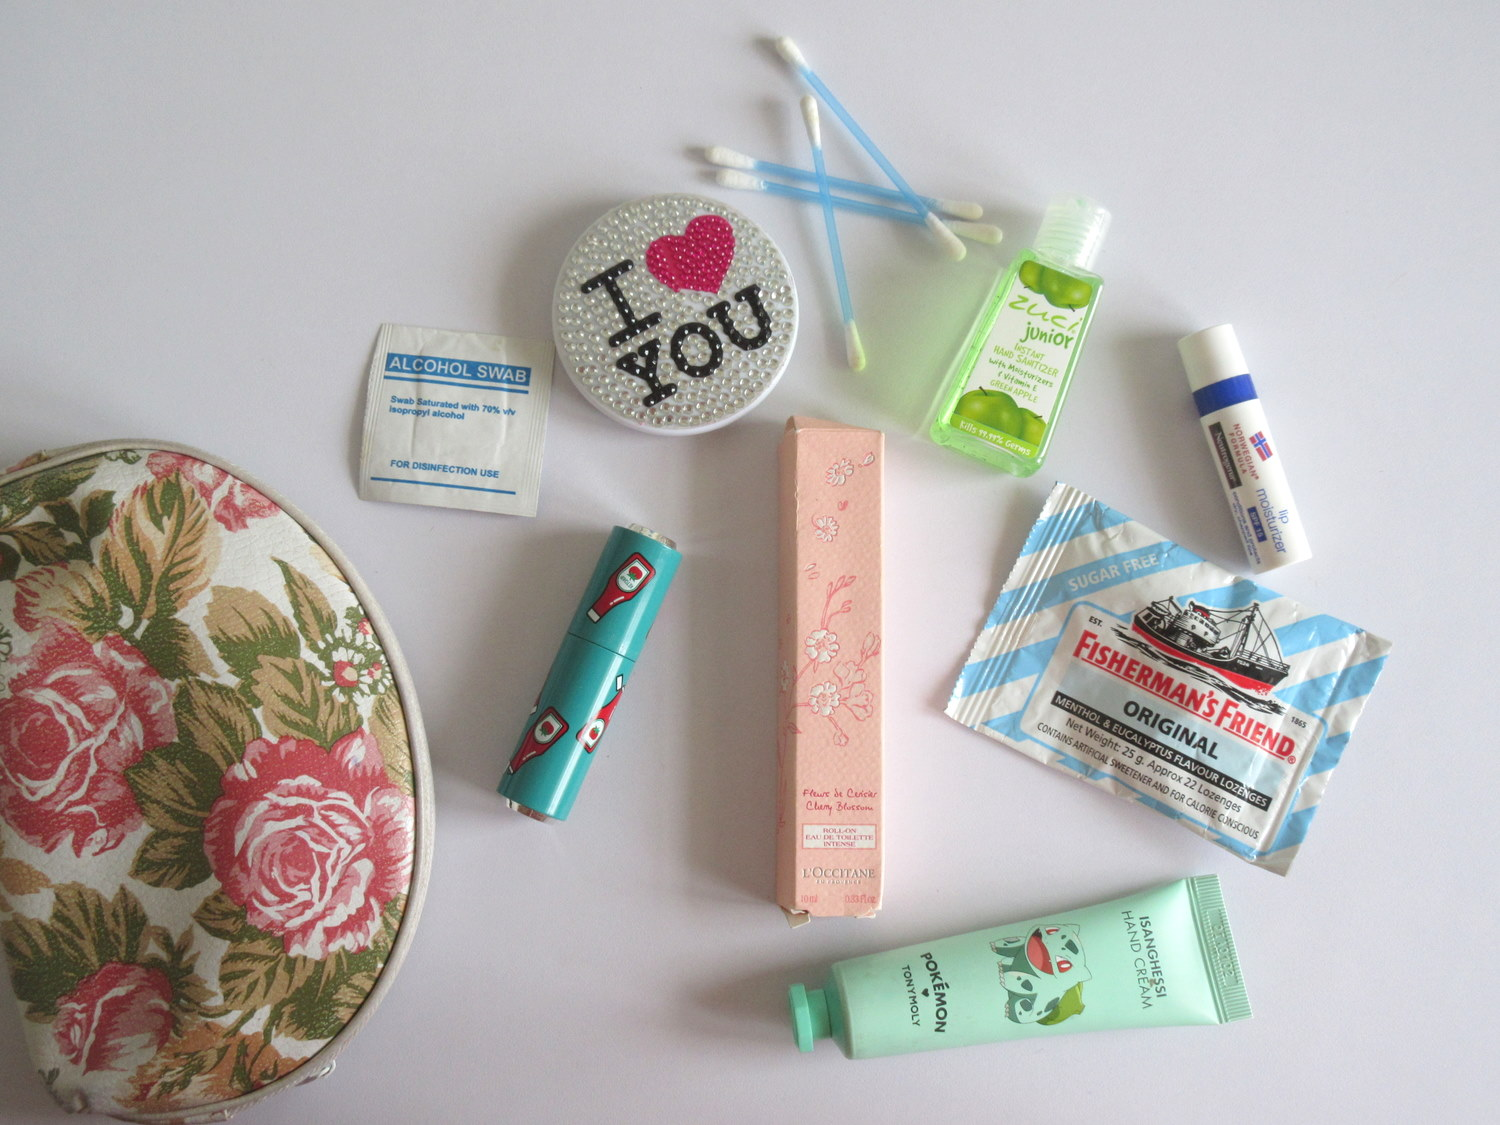 LOccitane Cherry Blossom Roll On Eau De Toilette Intense, fisherman's friend, Zuci Junior Green Apple Hand Sanitizer, Etude House Dear My Glass Tinting Lips Talk rd302 swag red